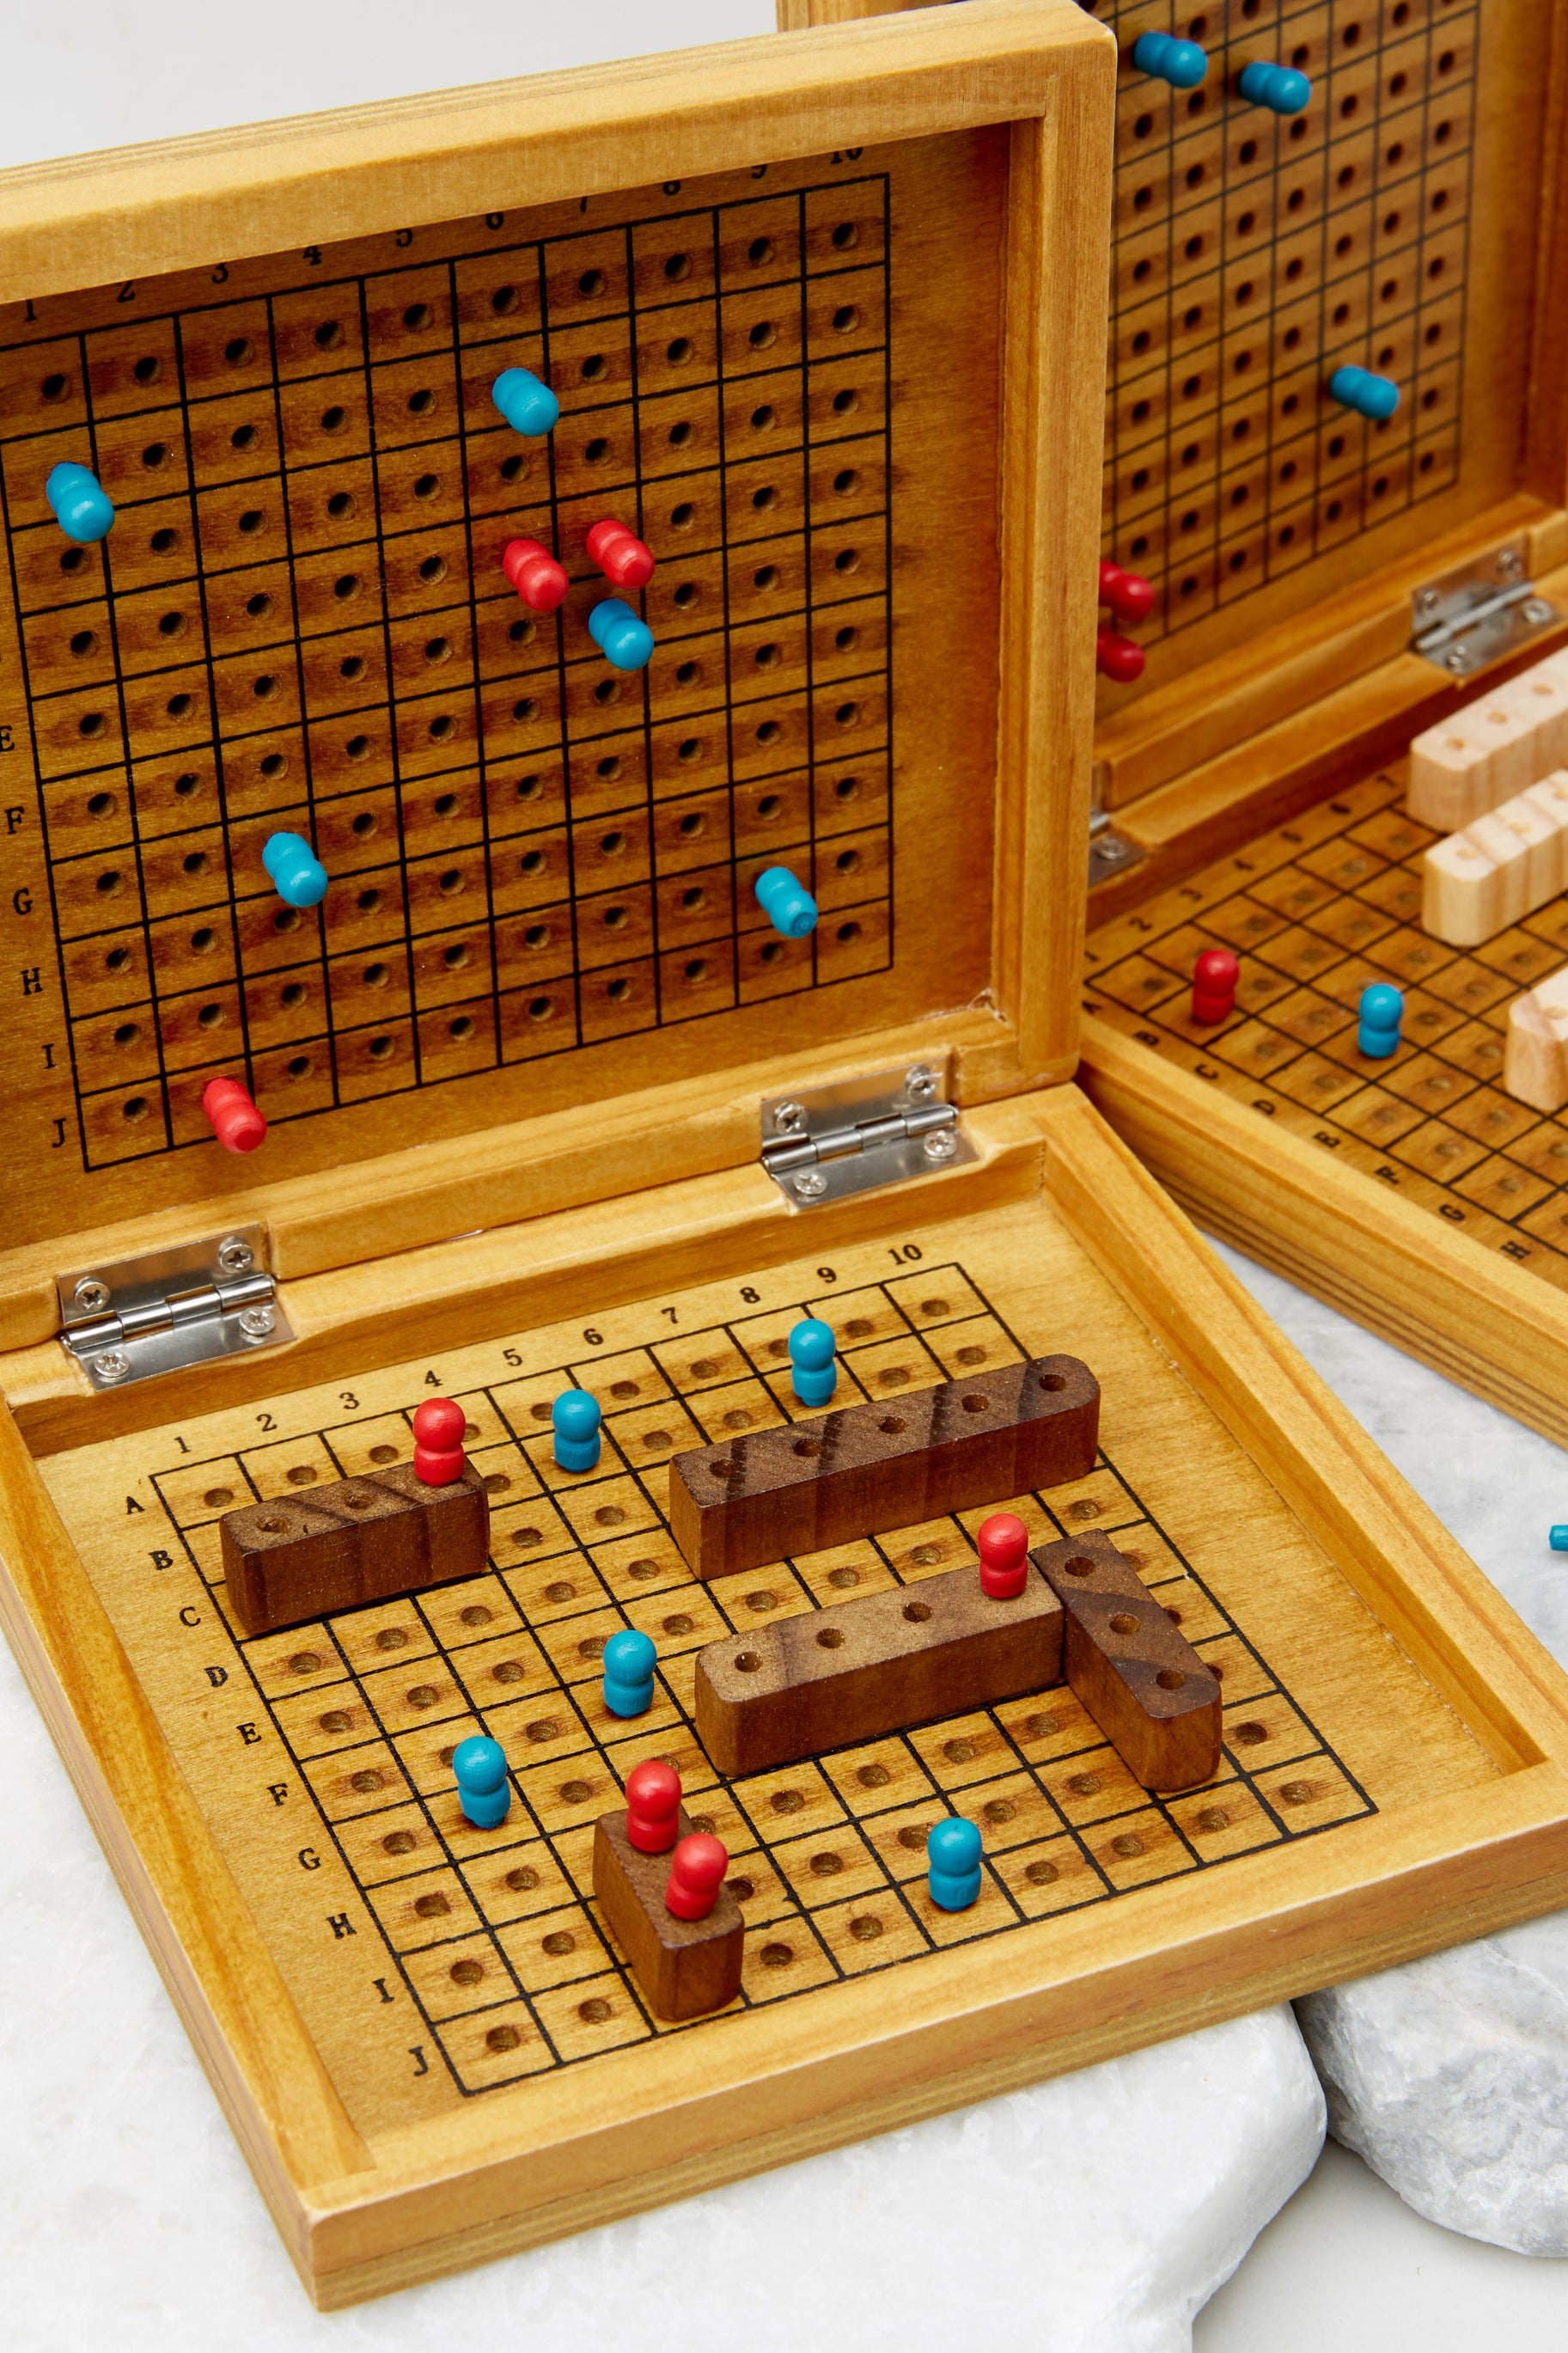 2 Sea Battle Wooden Game @ reddress.com